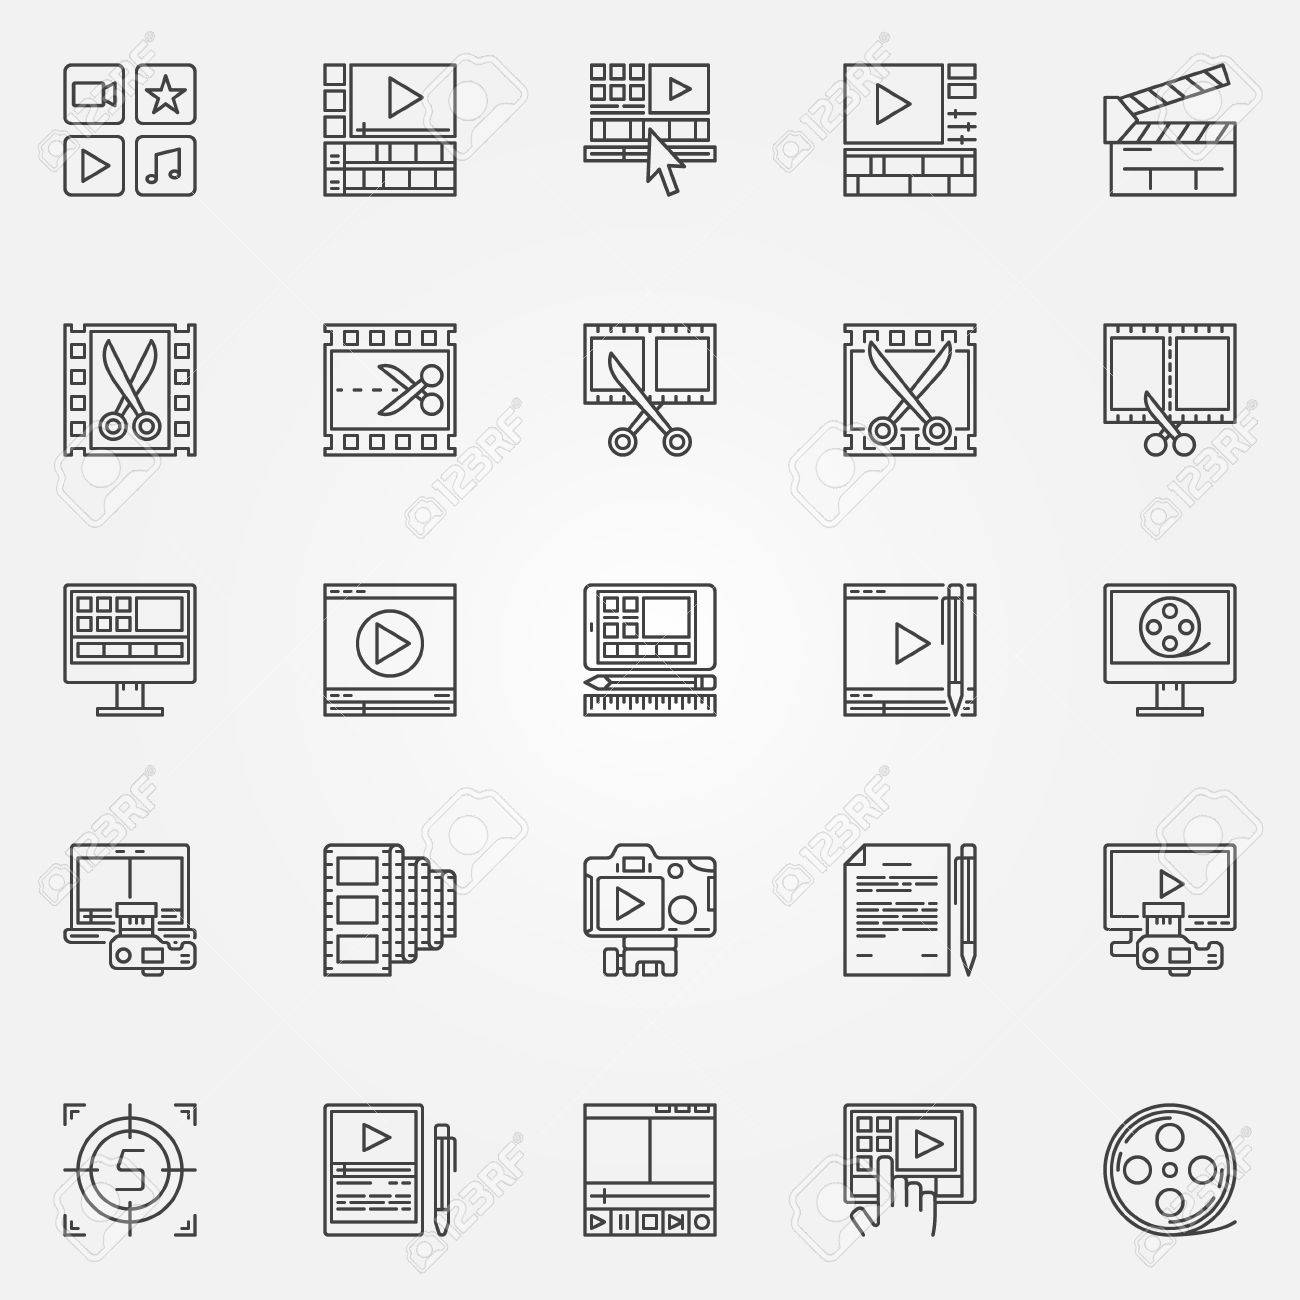 Video editor icons set - video editing signs in thin line style. Minimal movie symbols - 54939549